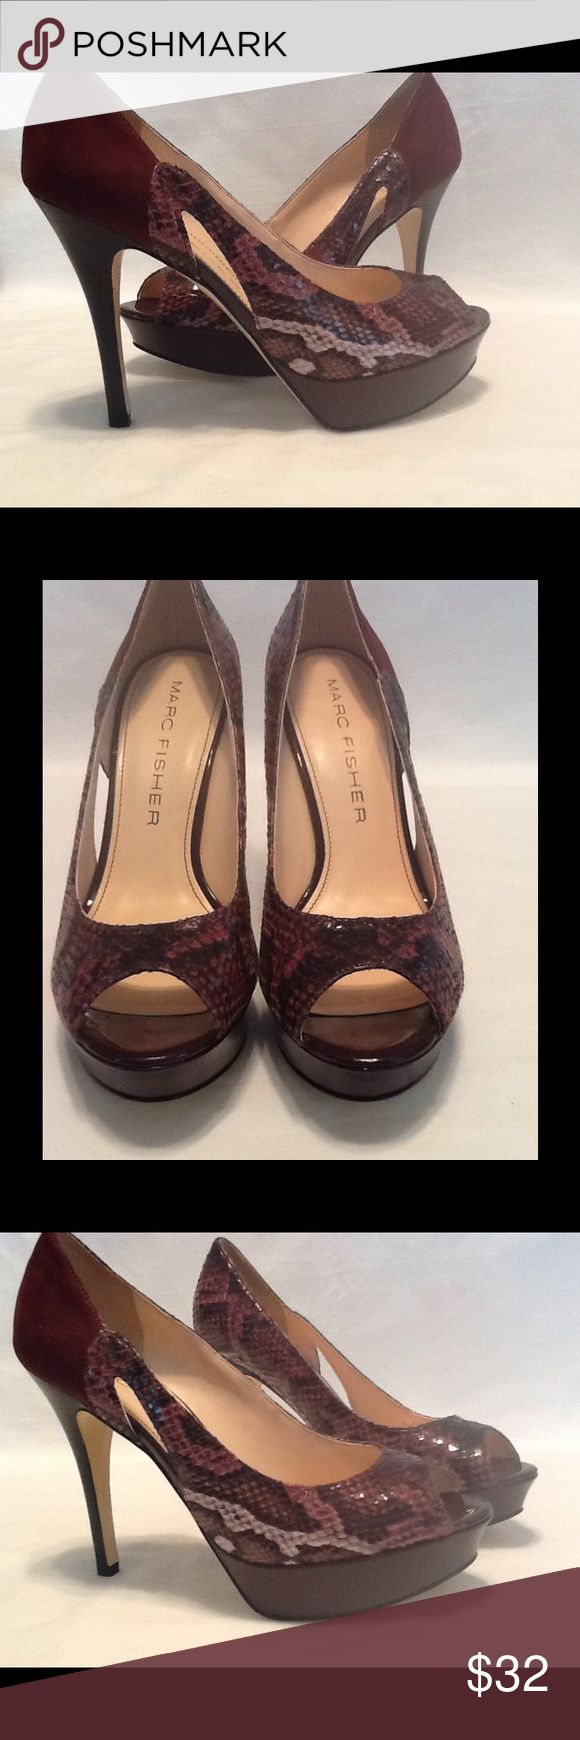 """Marc Fisher reptile print platform stilettos New Mark Fisher """"Tumble"""" burgundy reptile print /suede look peeptoe platform stilettos size 8M . Beautiful pair of shoes in new condition Shoes Platforms"""